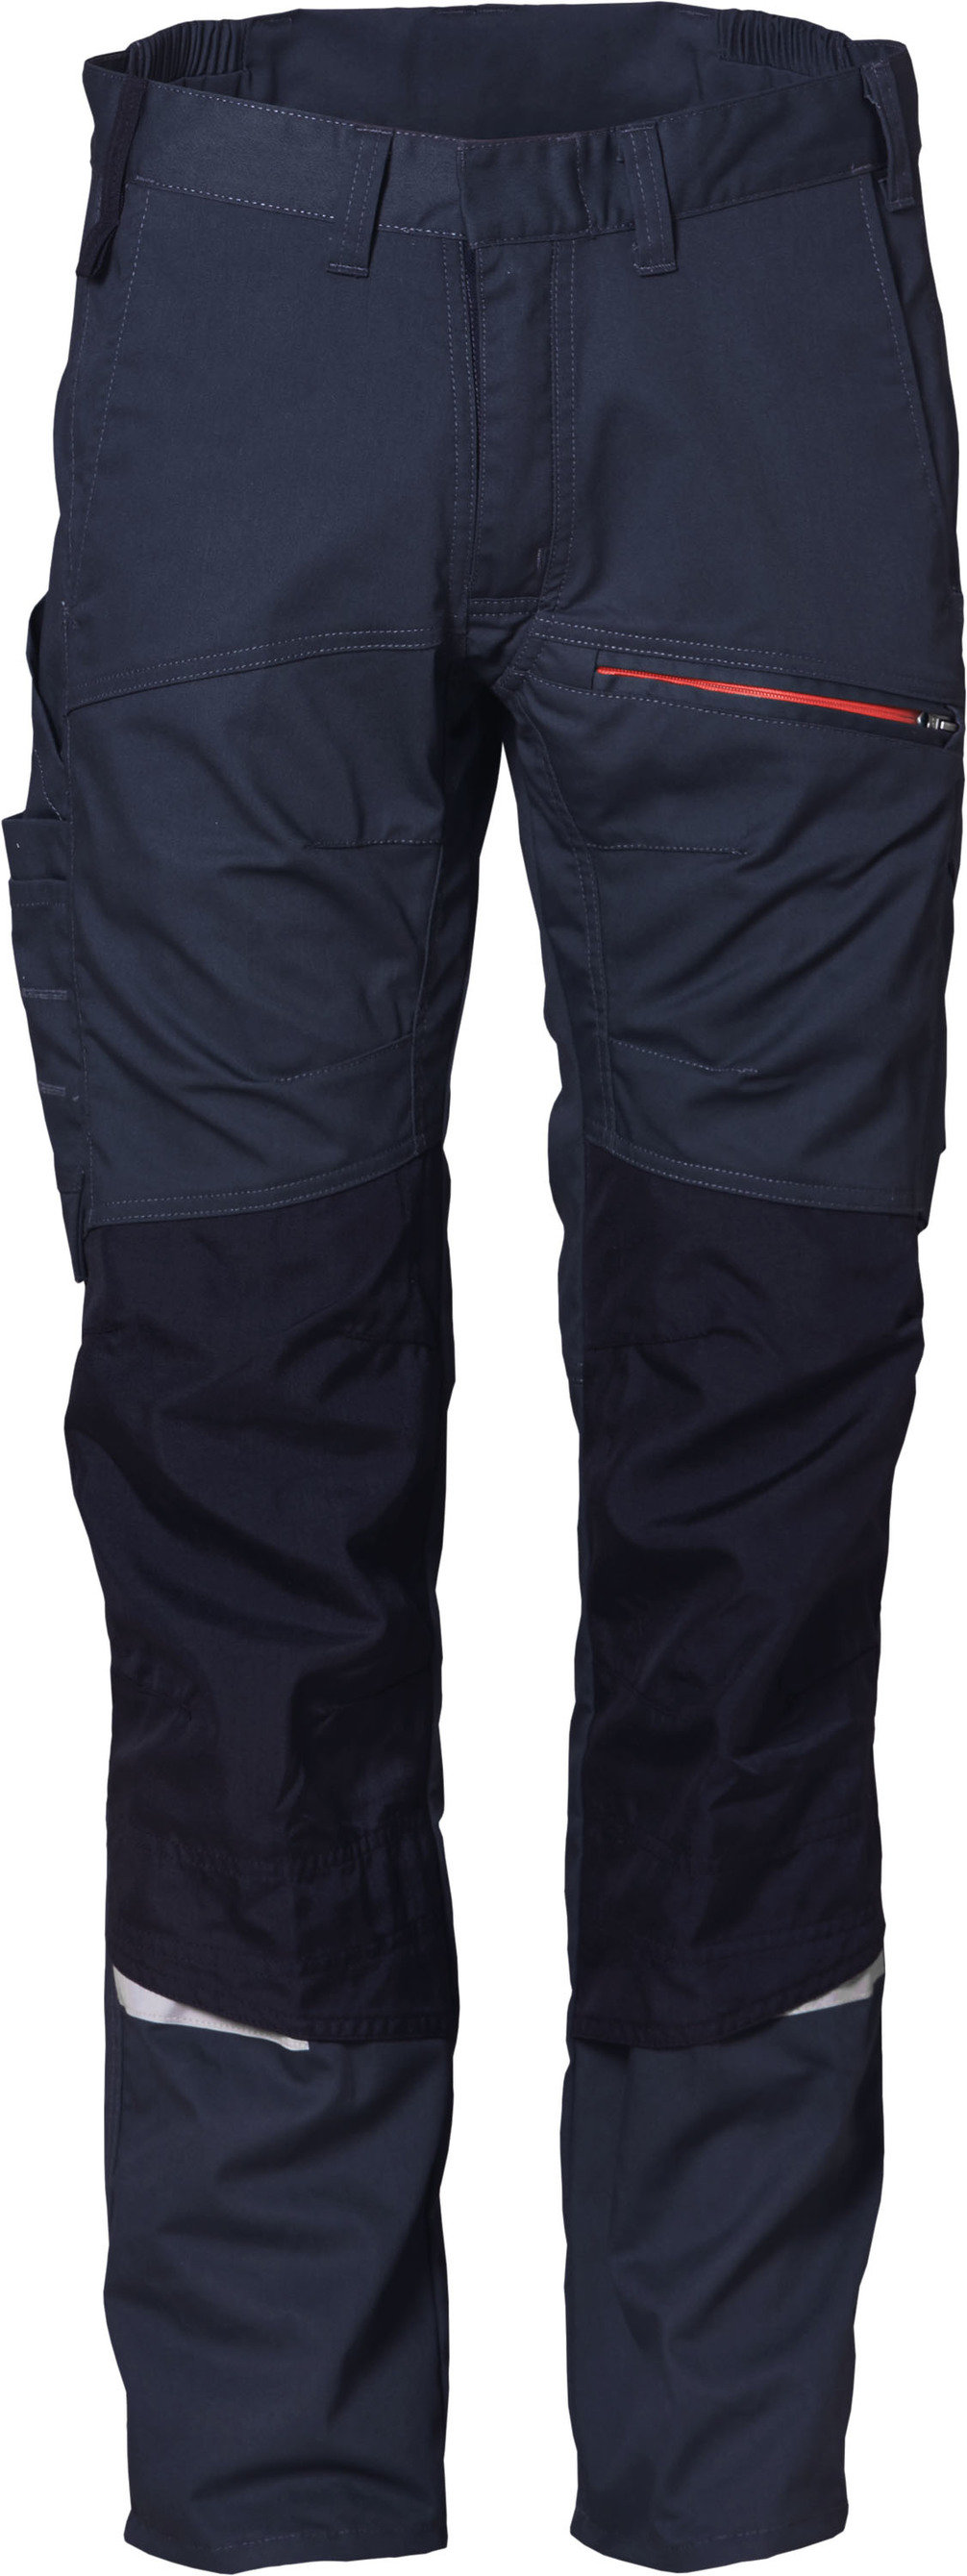 Kansas Bundhose Evolve Flexforce